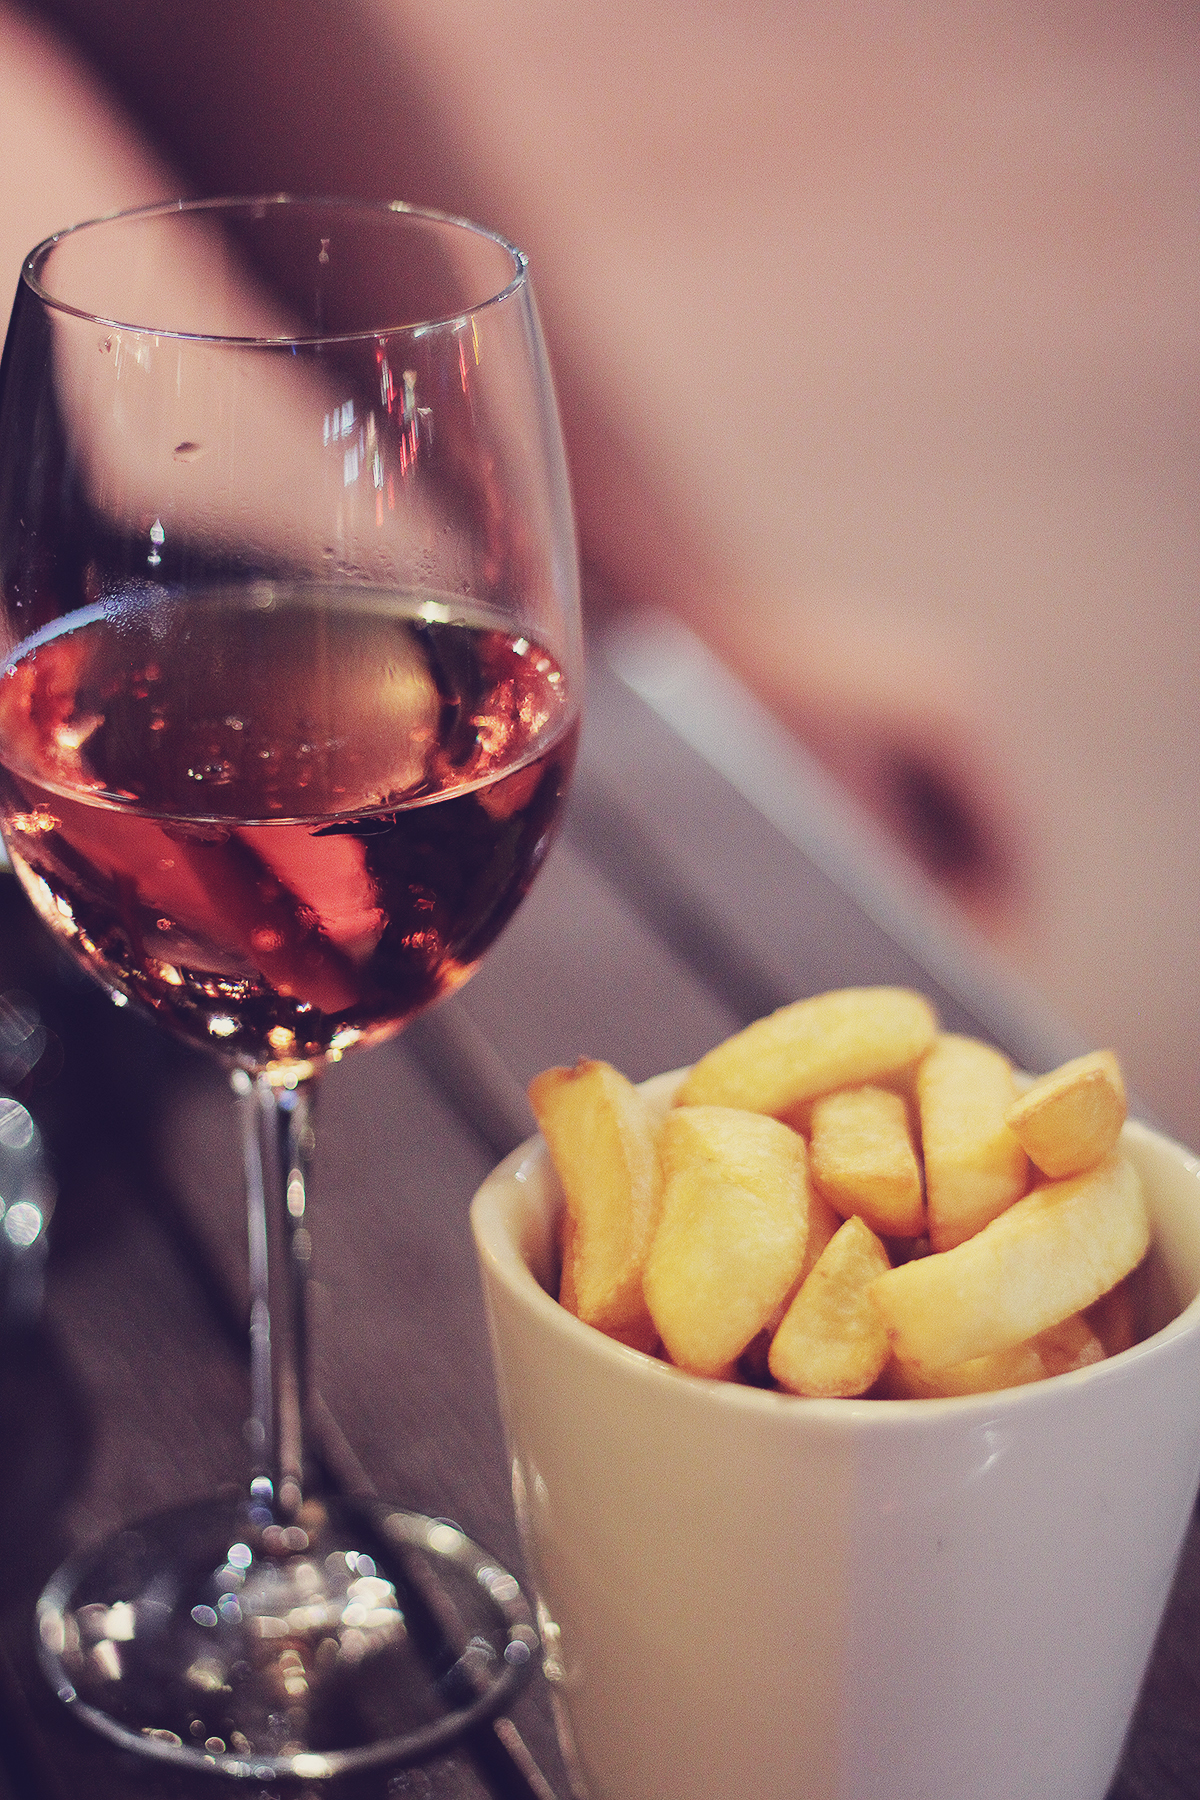 london-glass-of-rose-and-chips